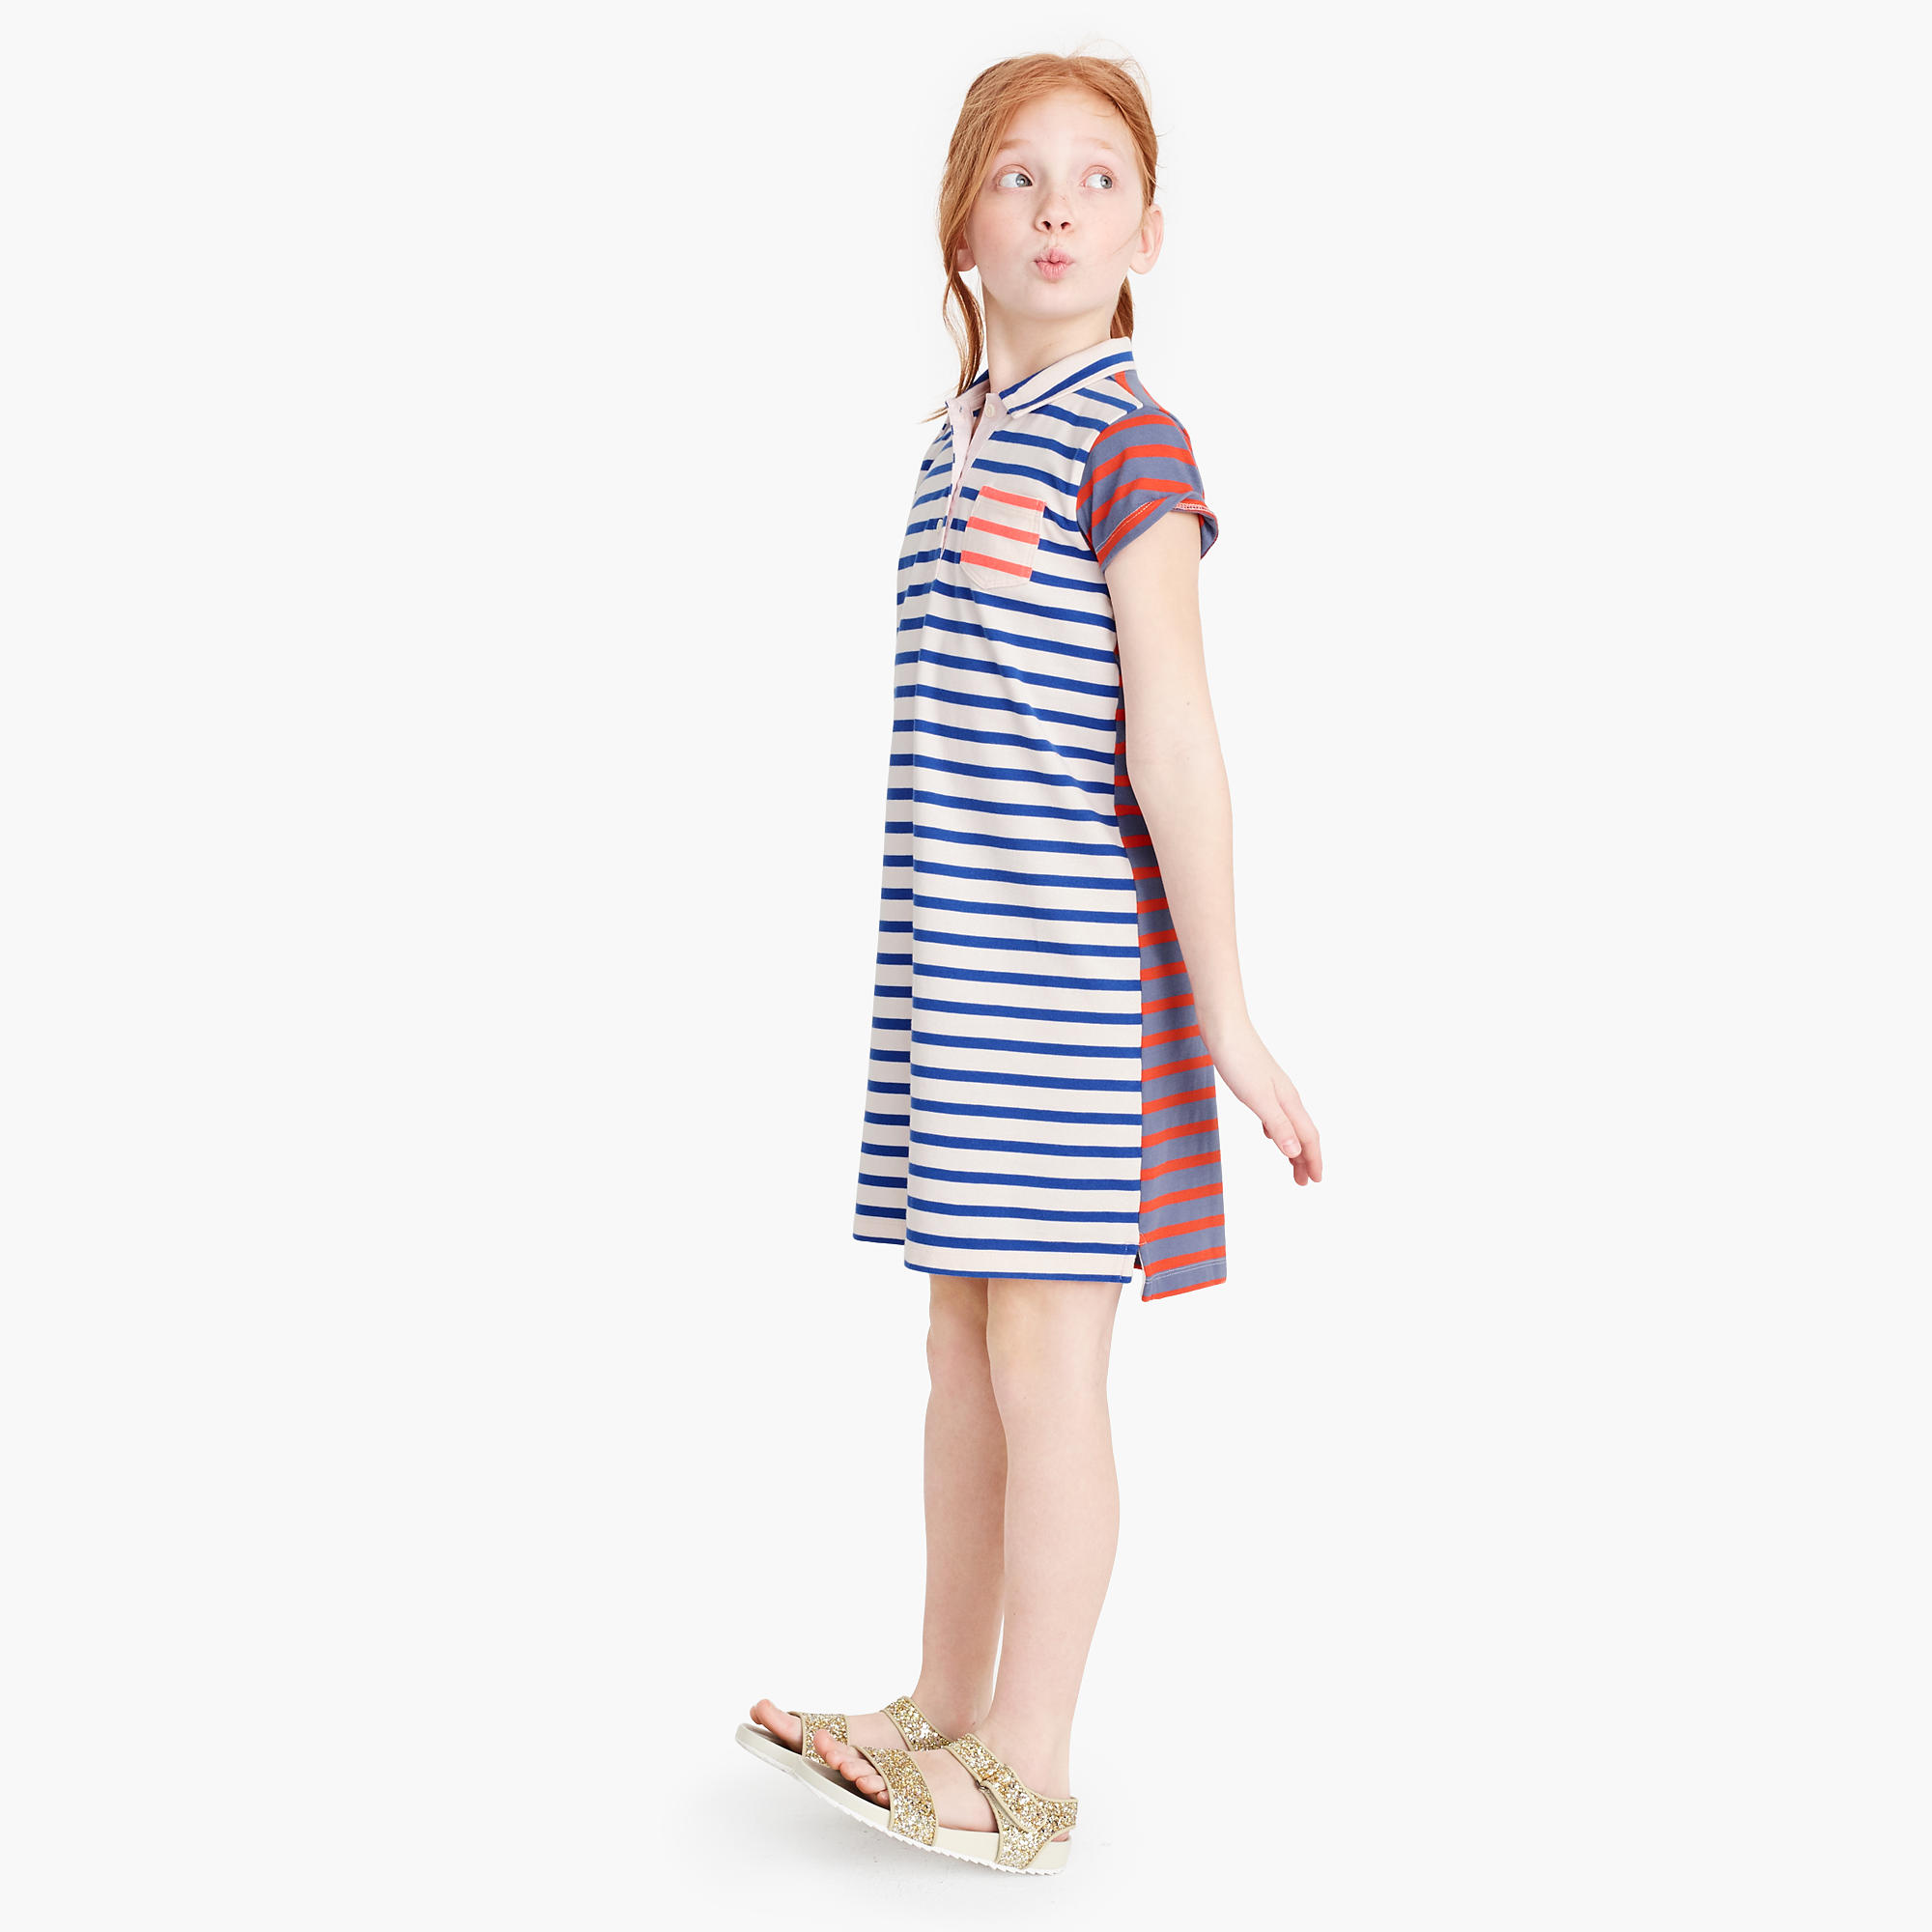 Christmas dress attire for age 57 - Girls Polo Dress In Mashup Stripes